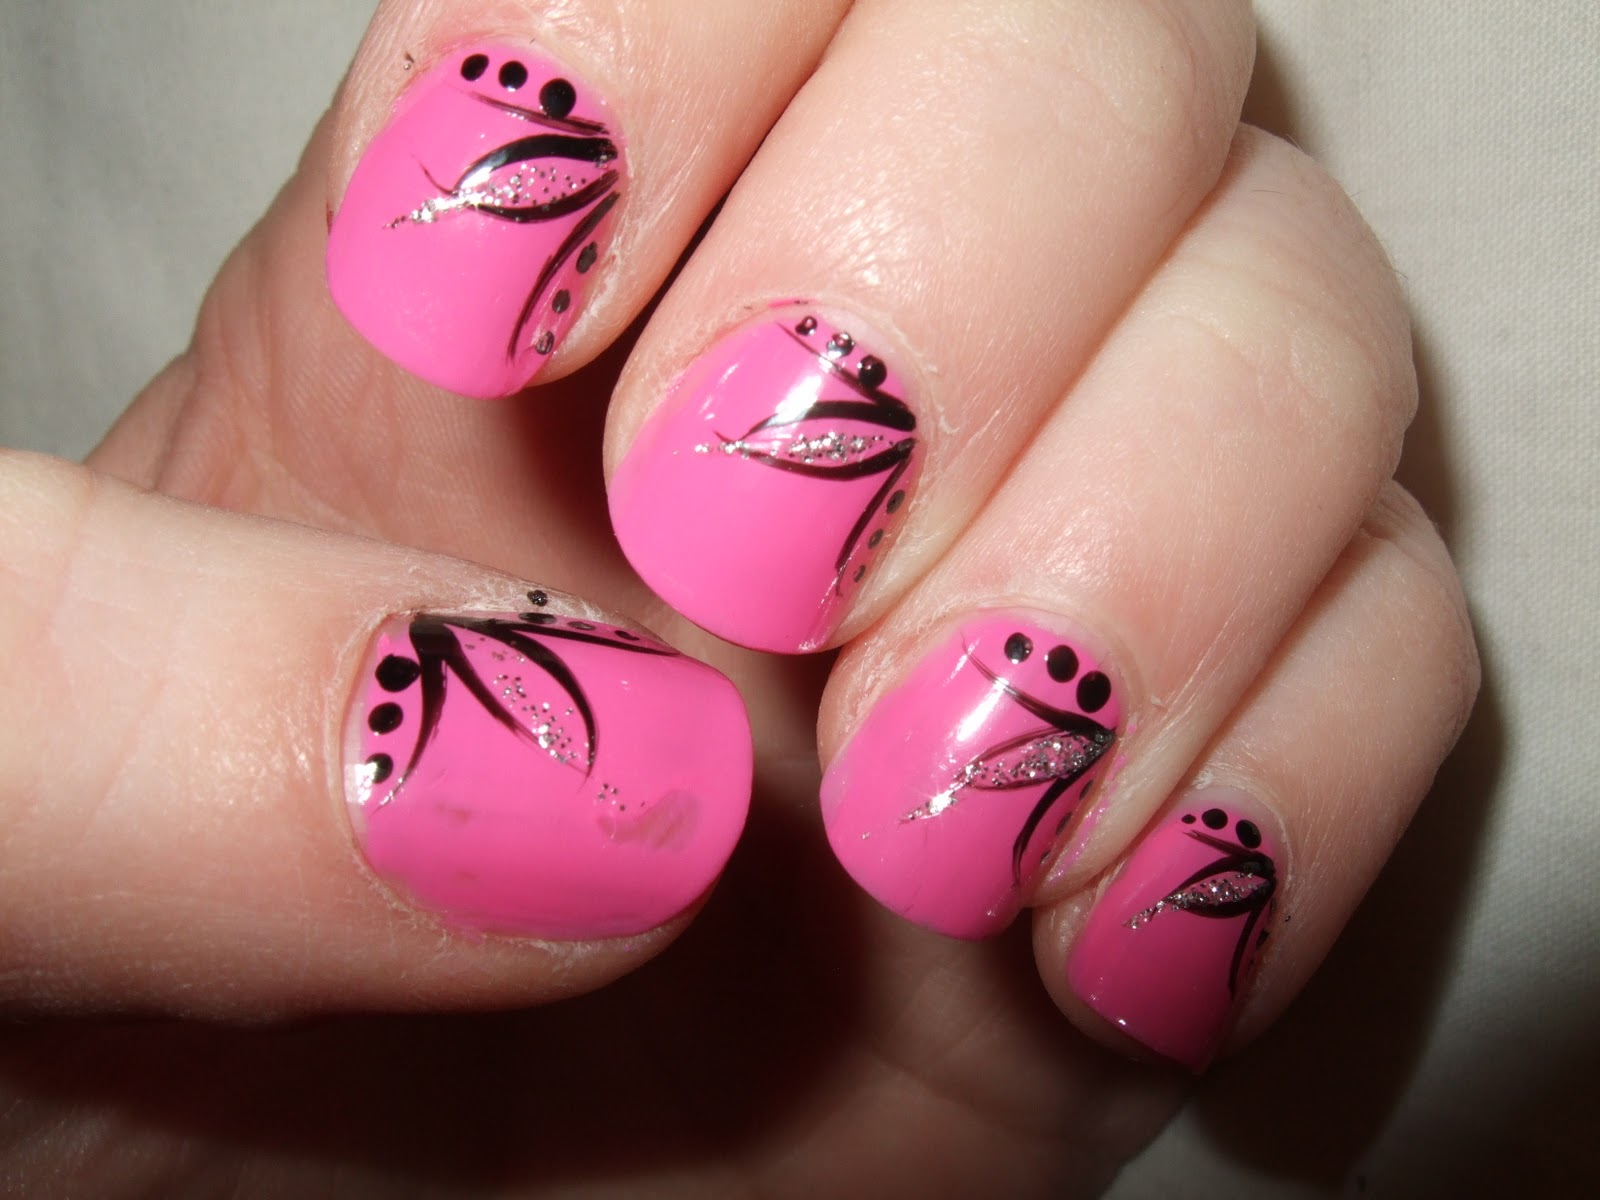 13 Nail Art Design Pictures 2 Images